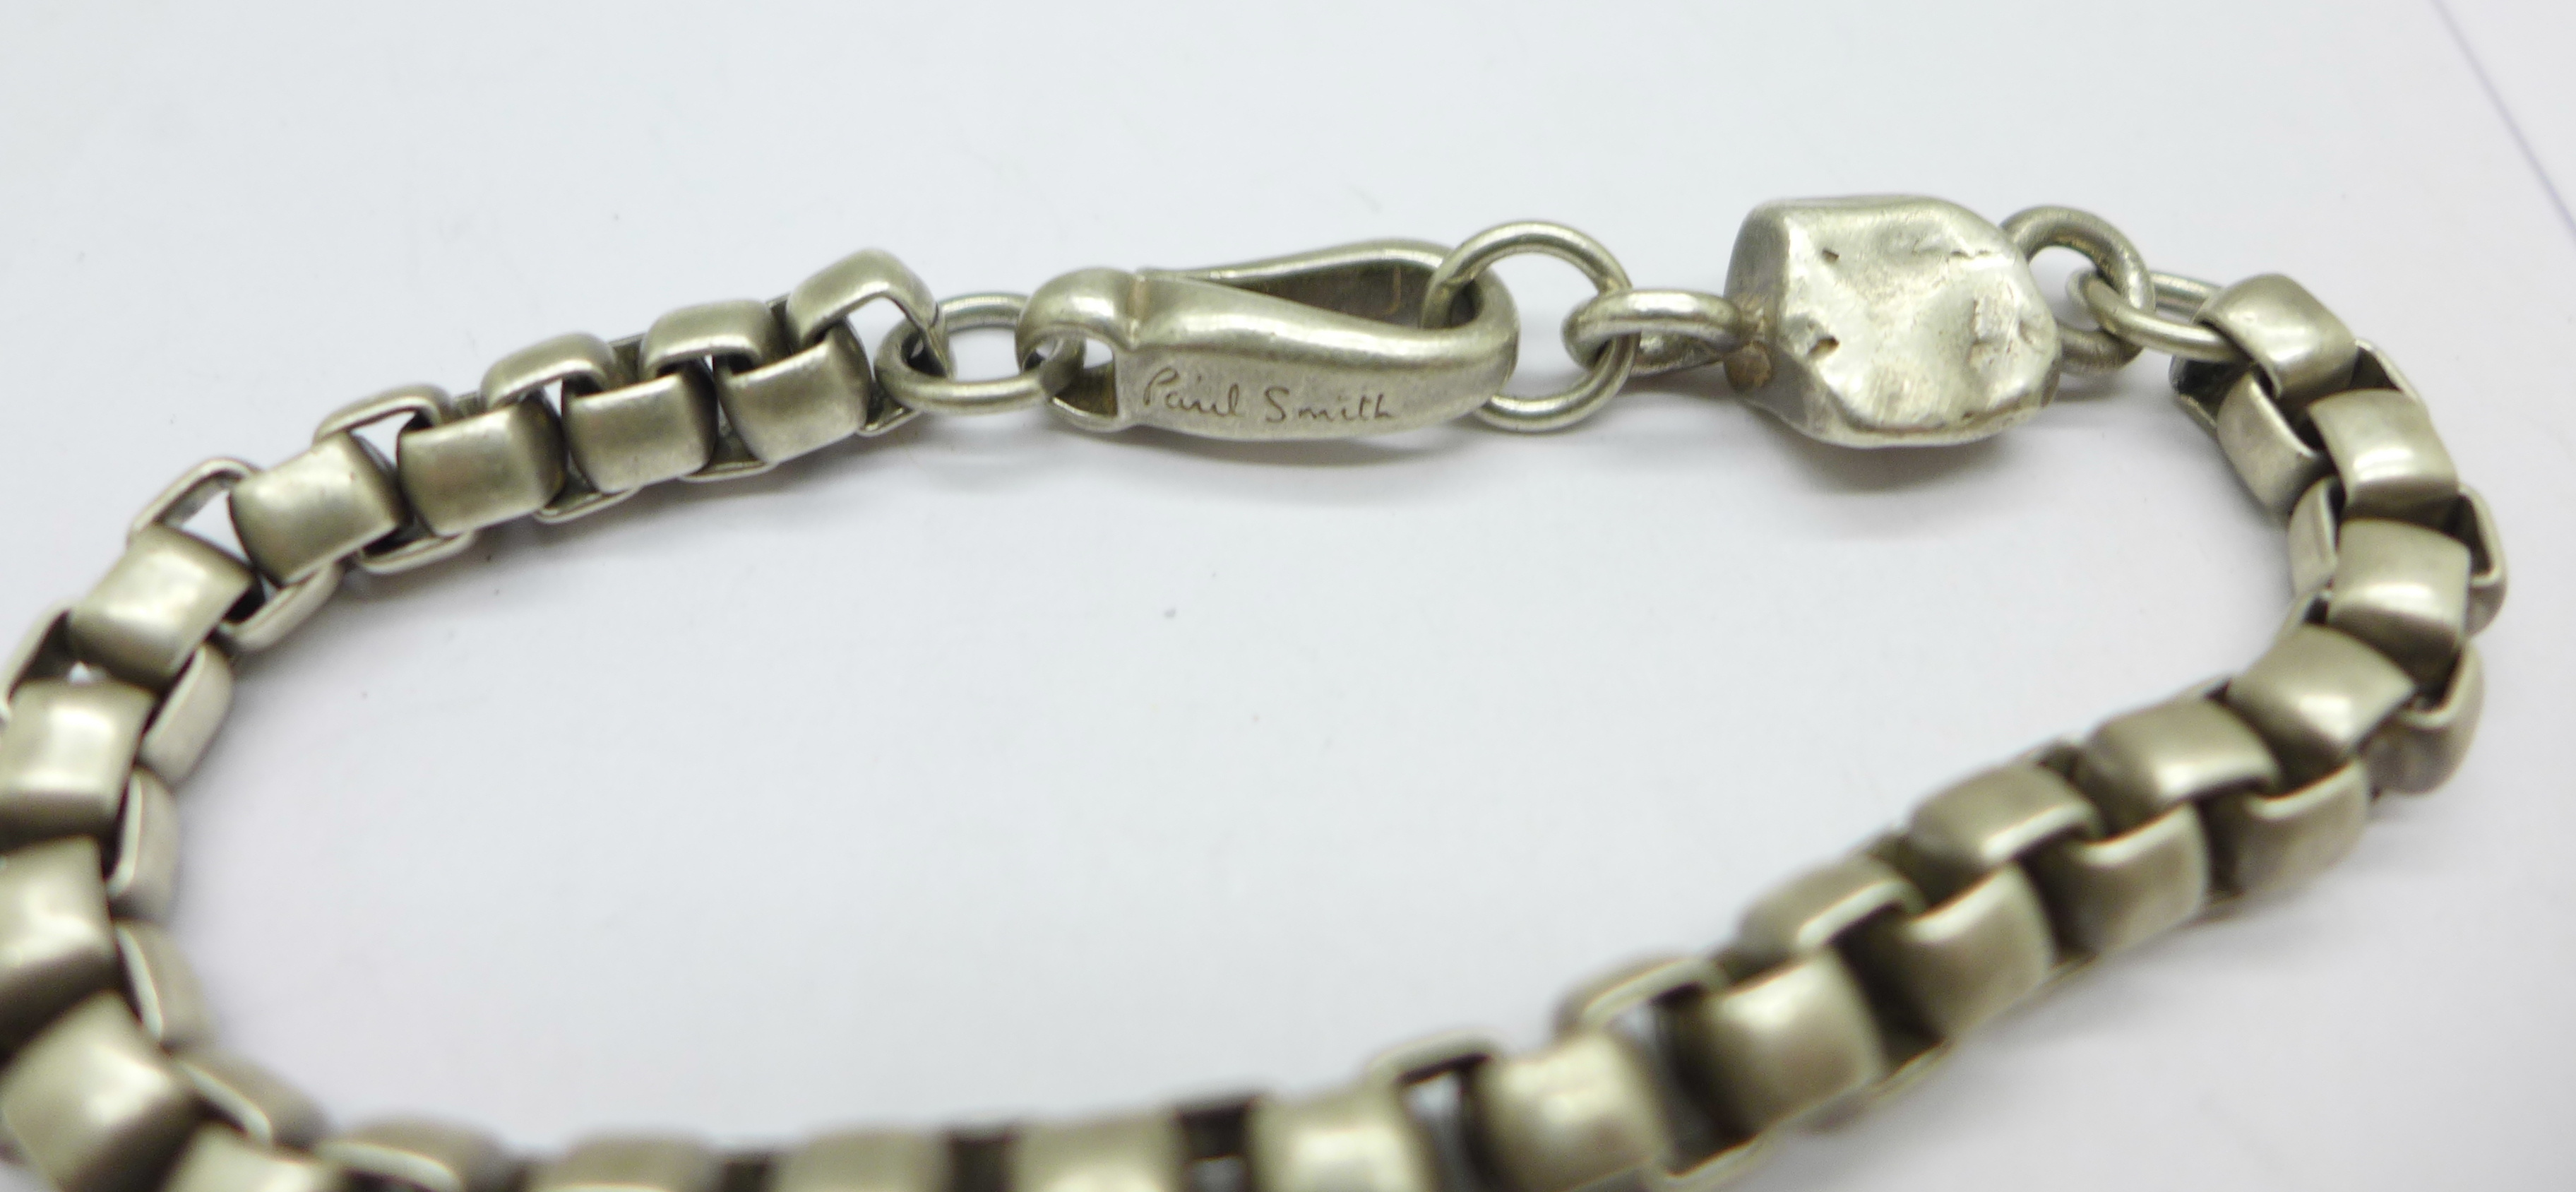 A Paul Smith silver chain with 'nugget' detail, 46g - Image 3 of 3